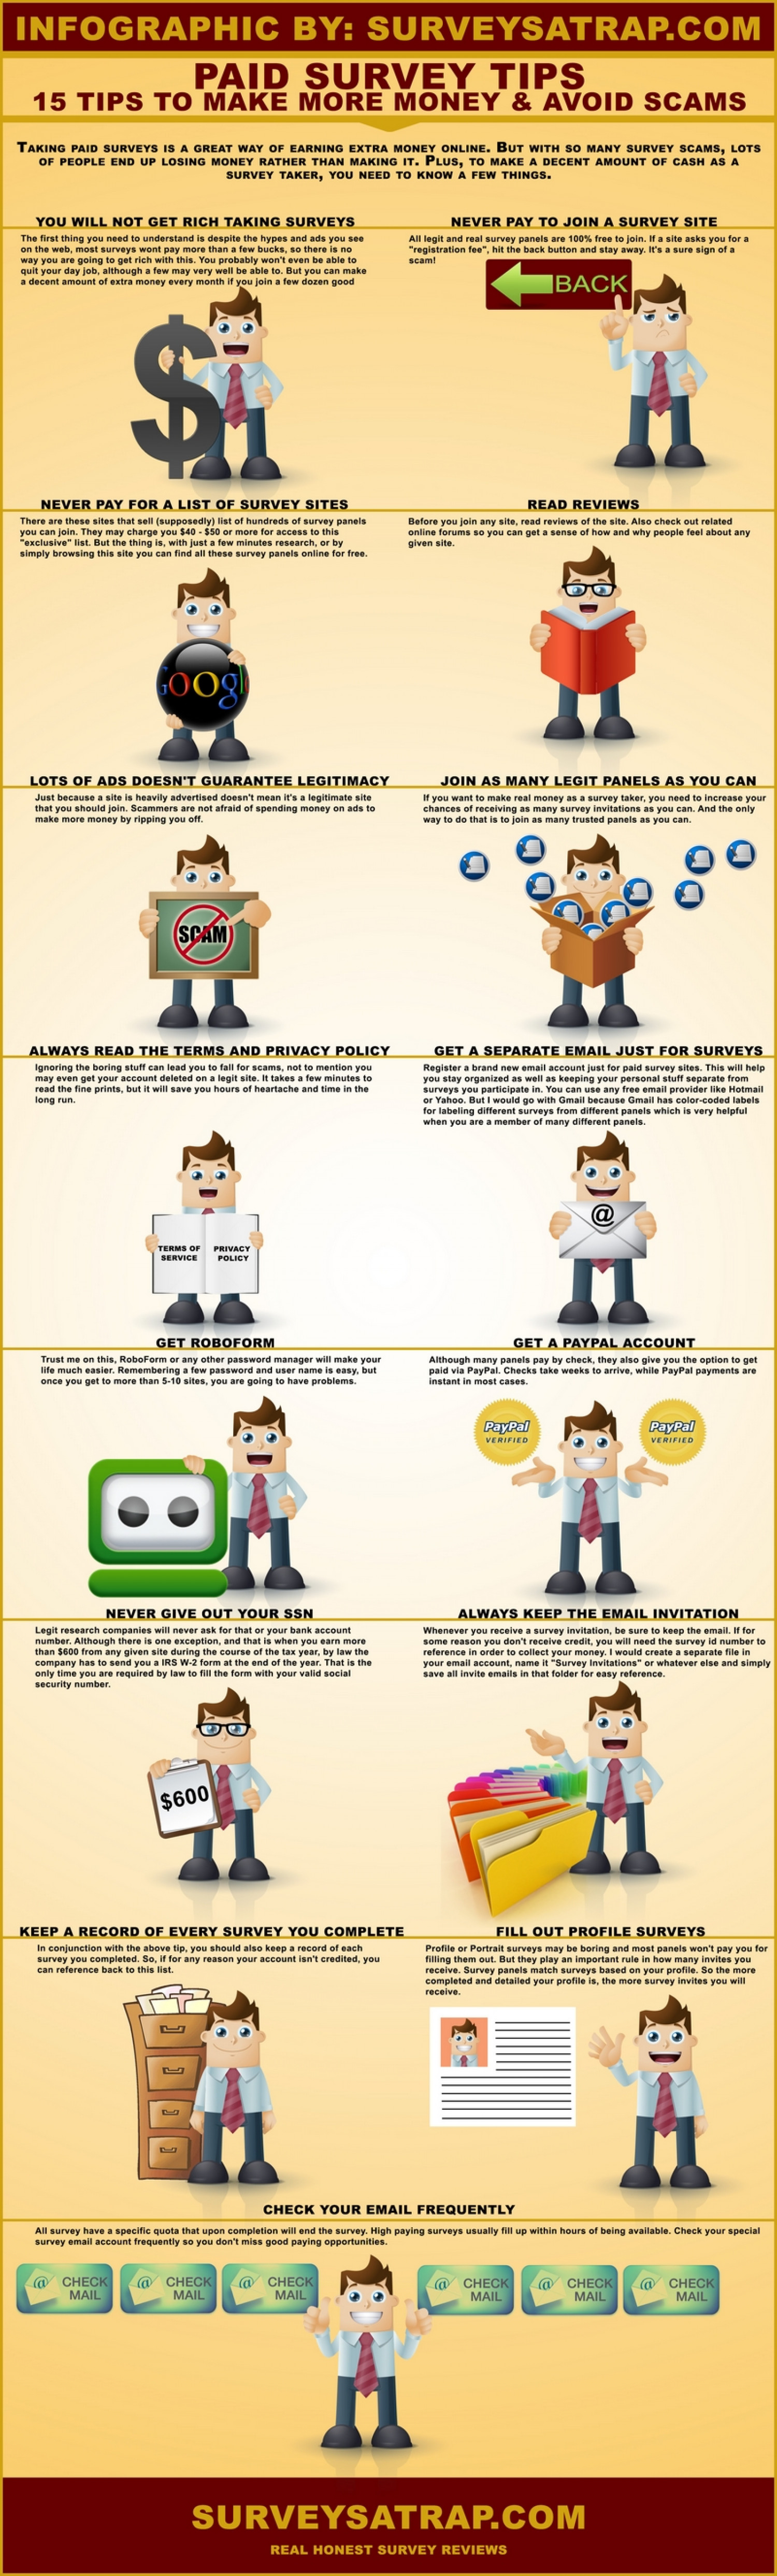 15 Paid Survey Tips Infographic